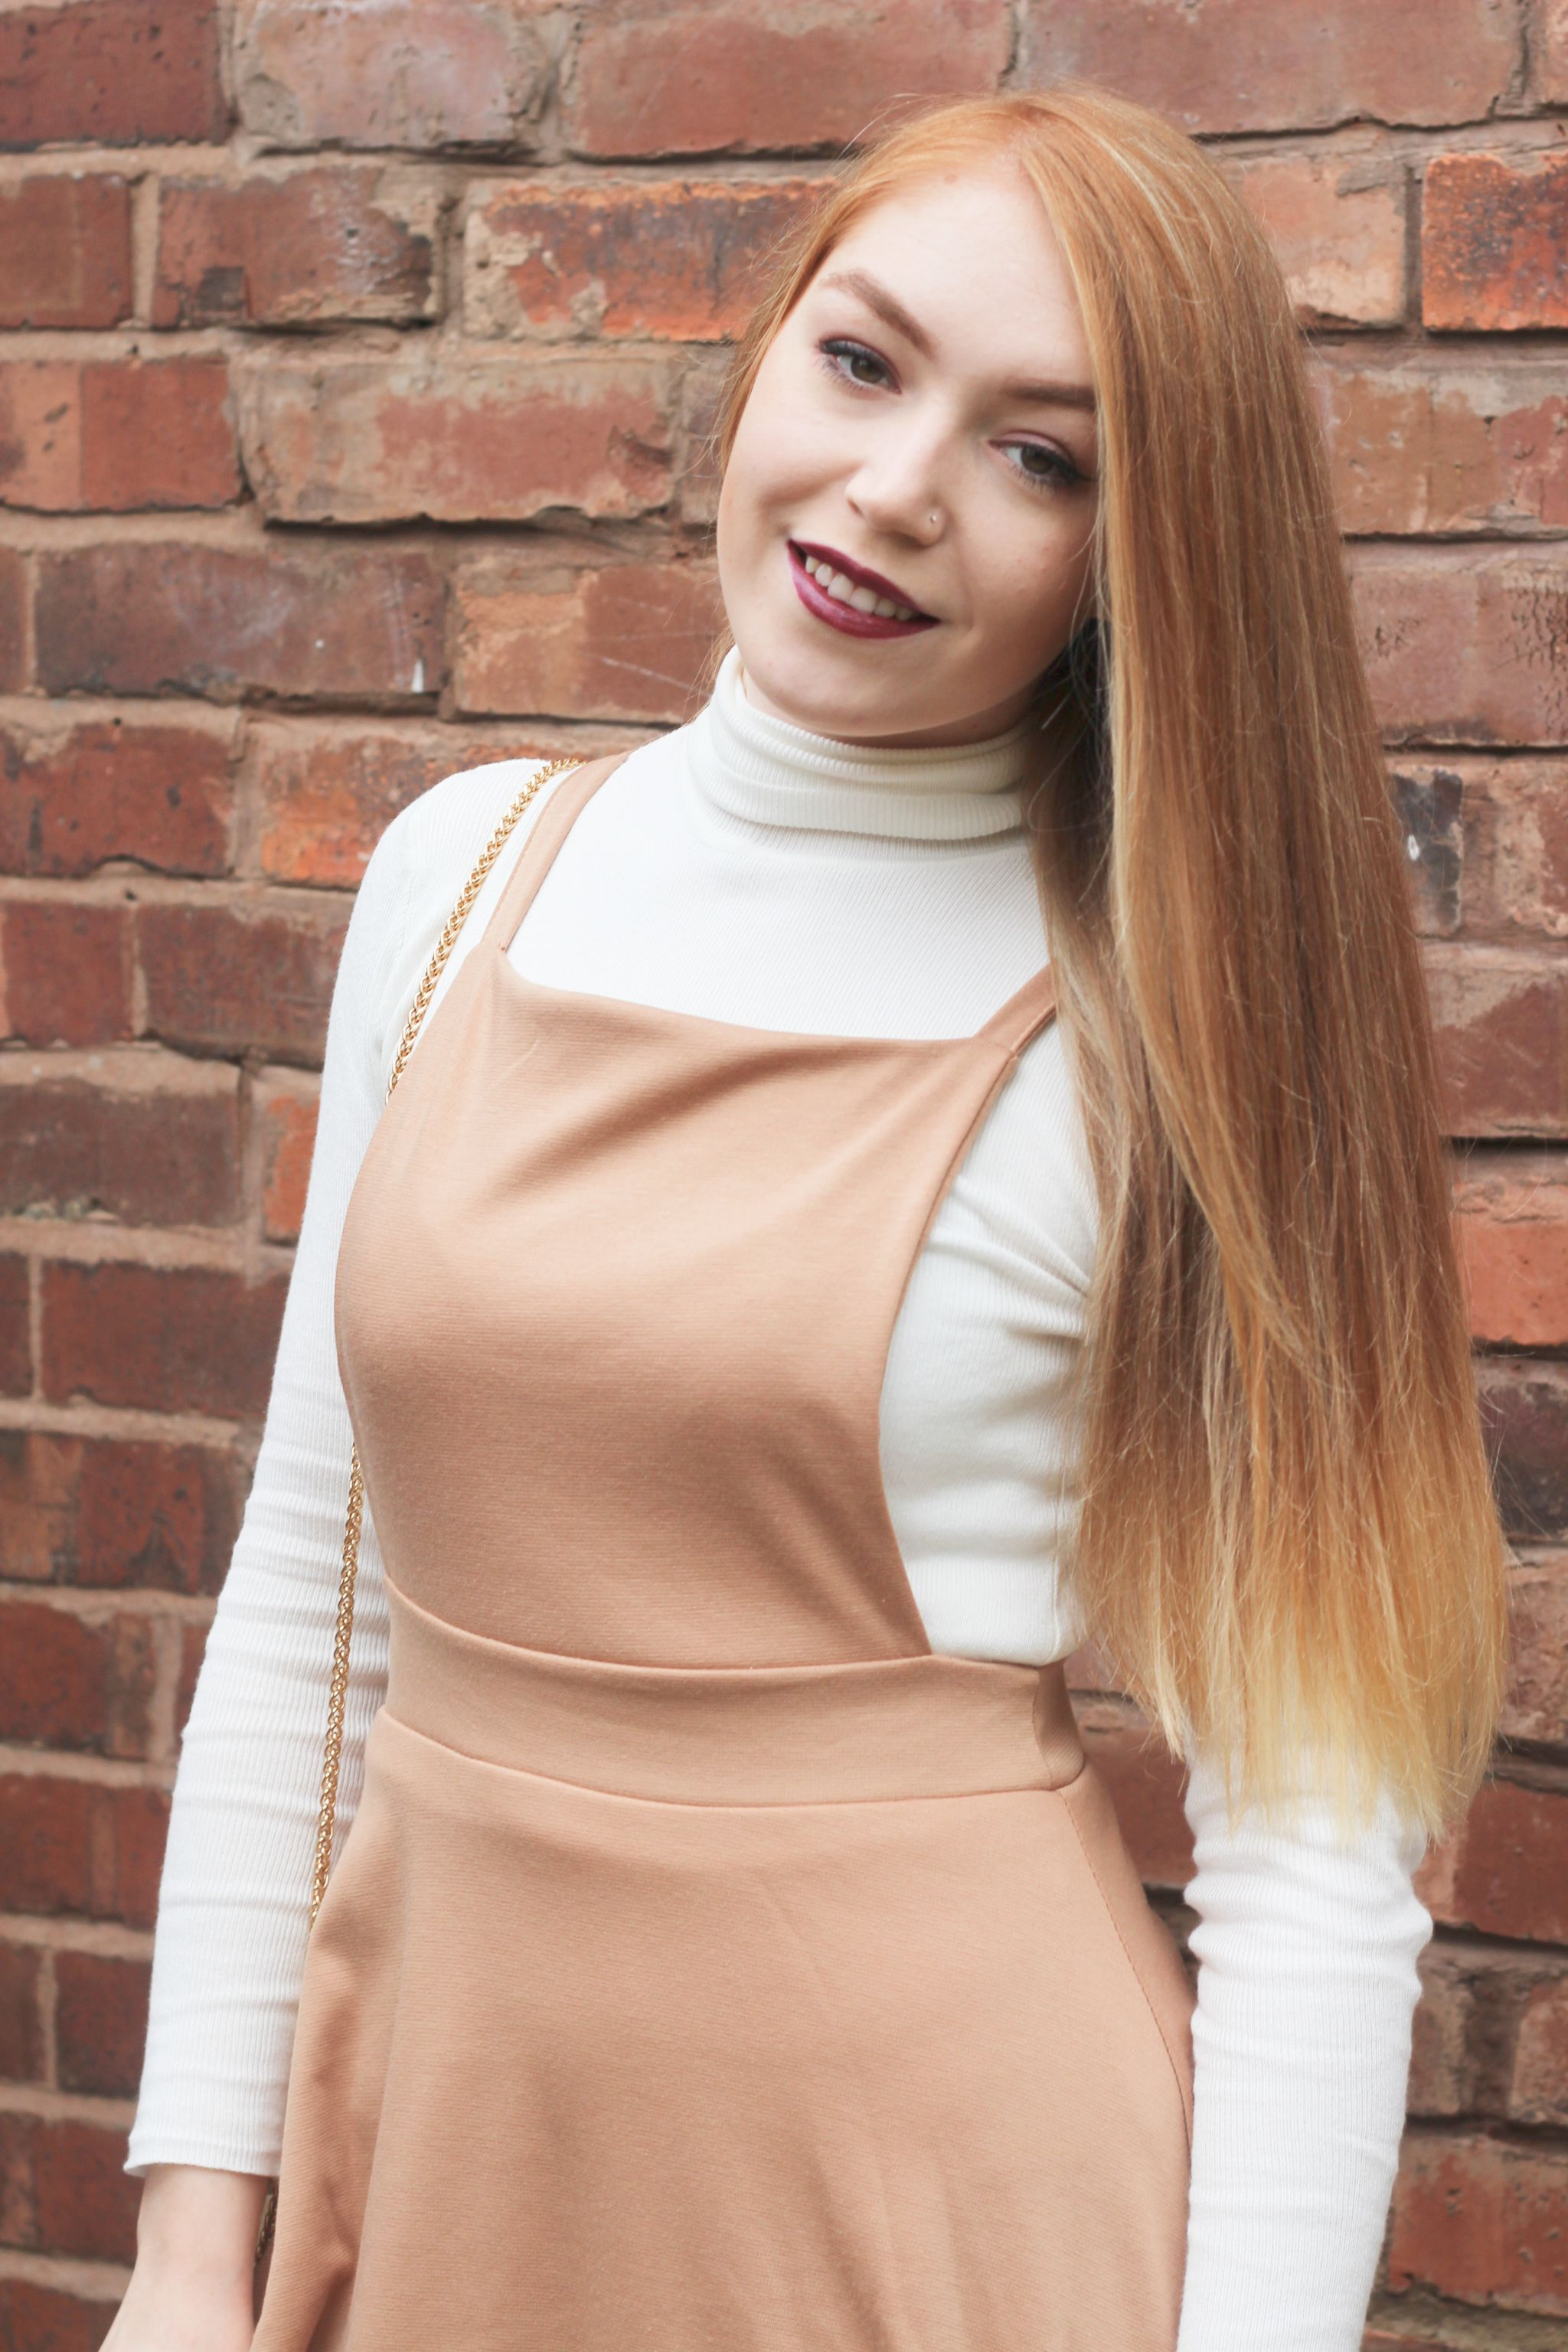 Boohoo Meal Deal Me in Pinafore Dress Brick Wall